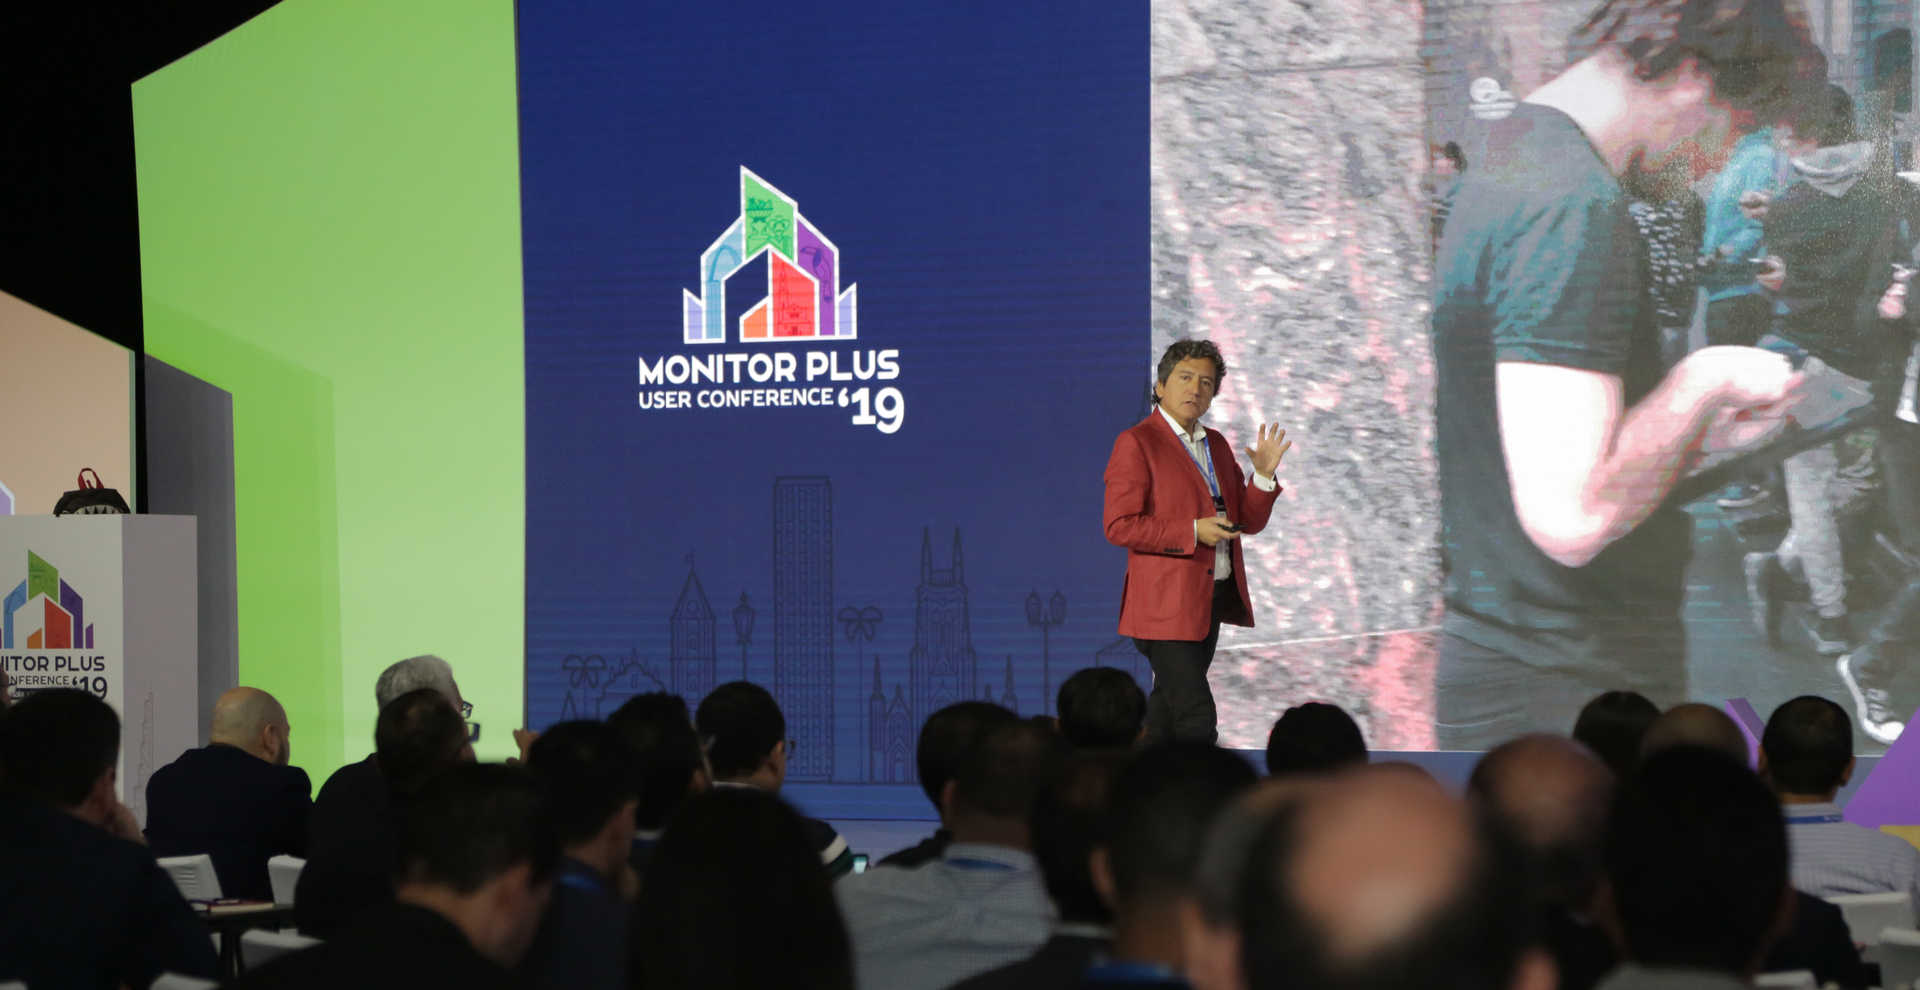 Ramón Heredia: Despertar de la Innovación - Monitor Plus User Conference 2019